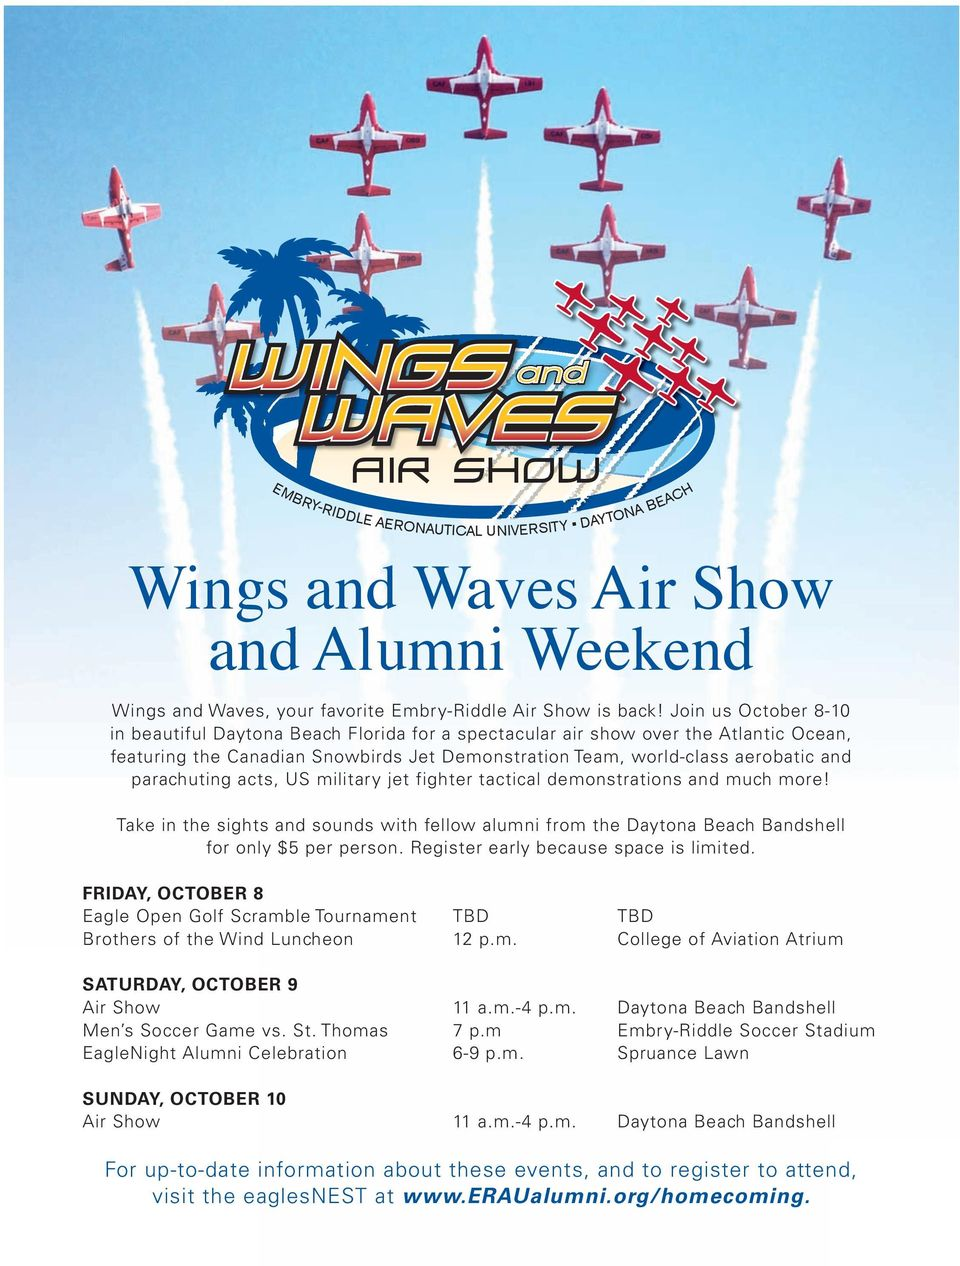 Join us October 8-10 in beautiful Daytona Beach Florida for a spectacular air show over the Atlantic Ocean, featuring the Canadian Snowbirds Jet Demonstration Team, world-class aerobatic and